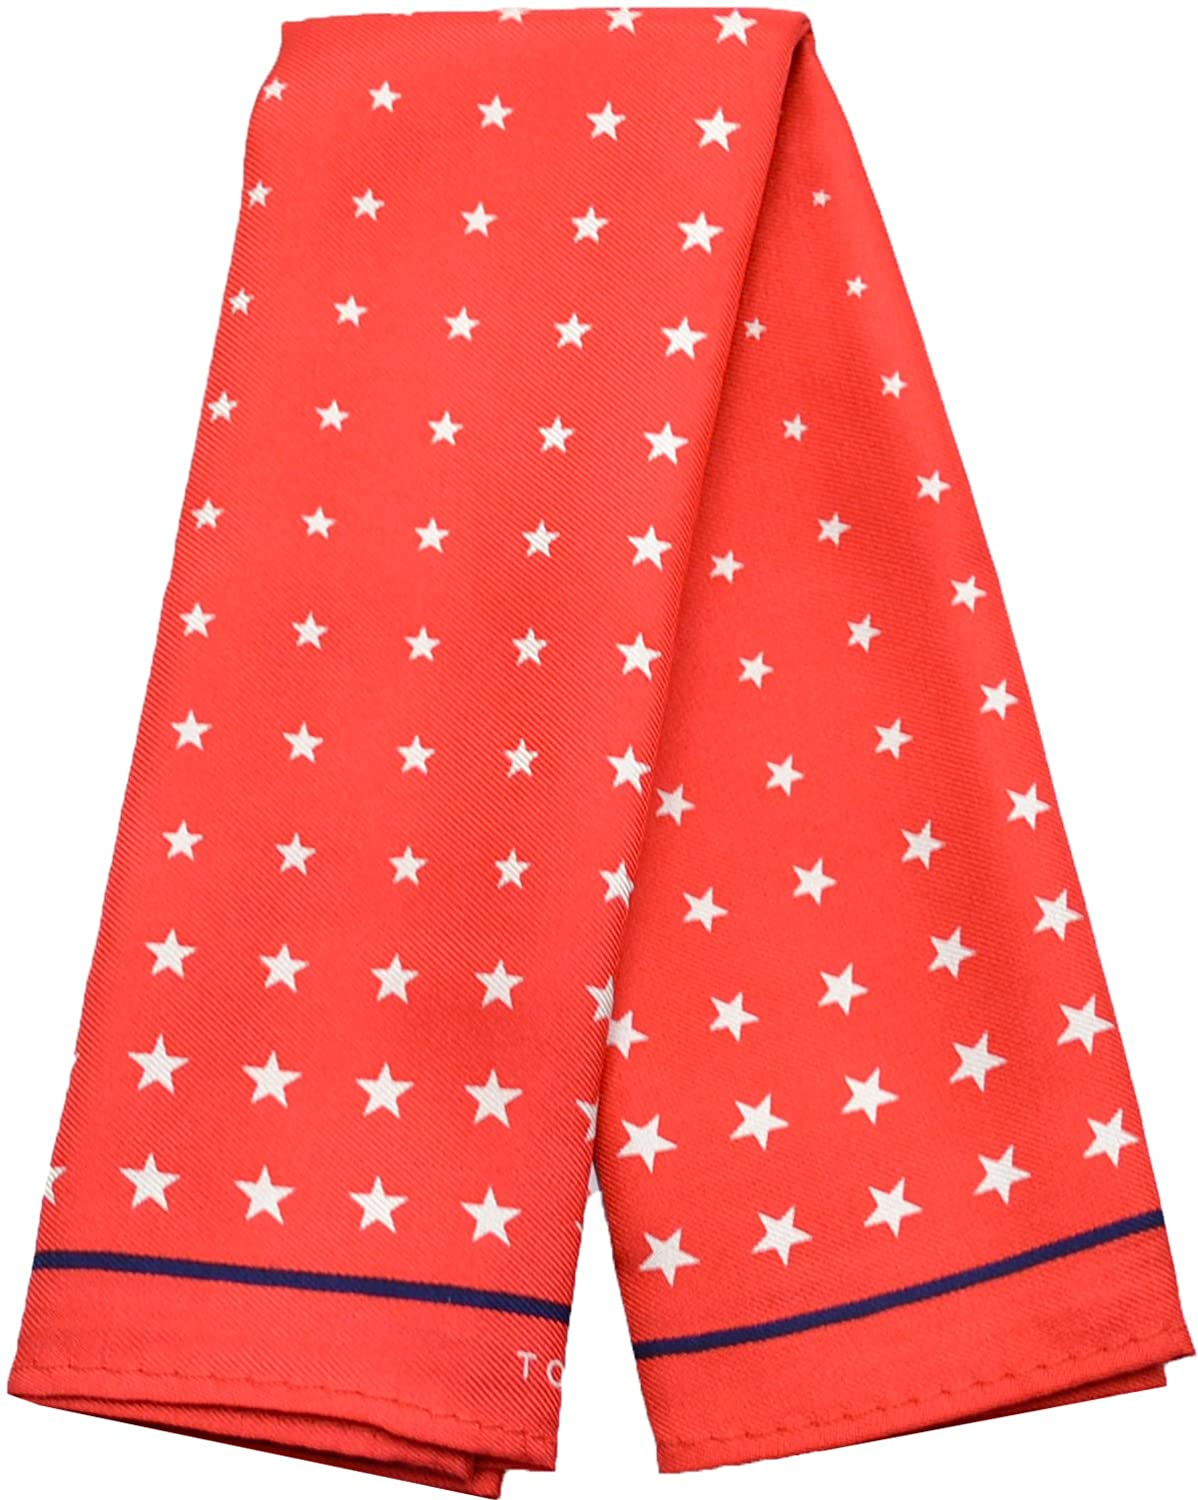 Tommy Hilfiger Men's Star Print Pocket Square (Red)